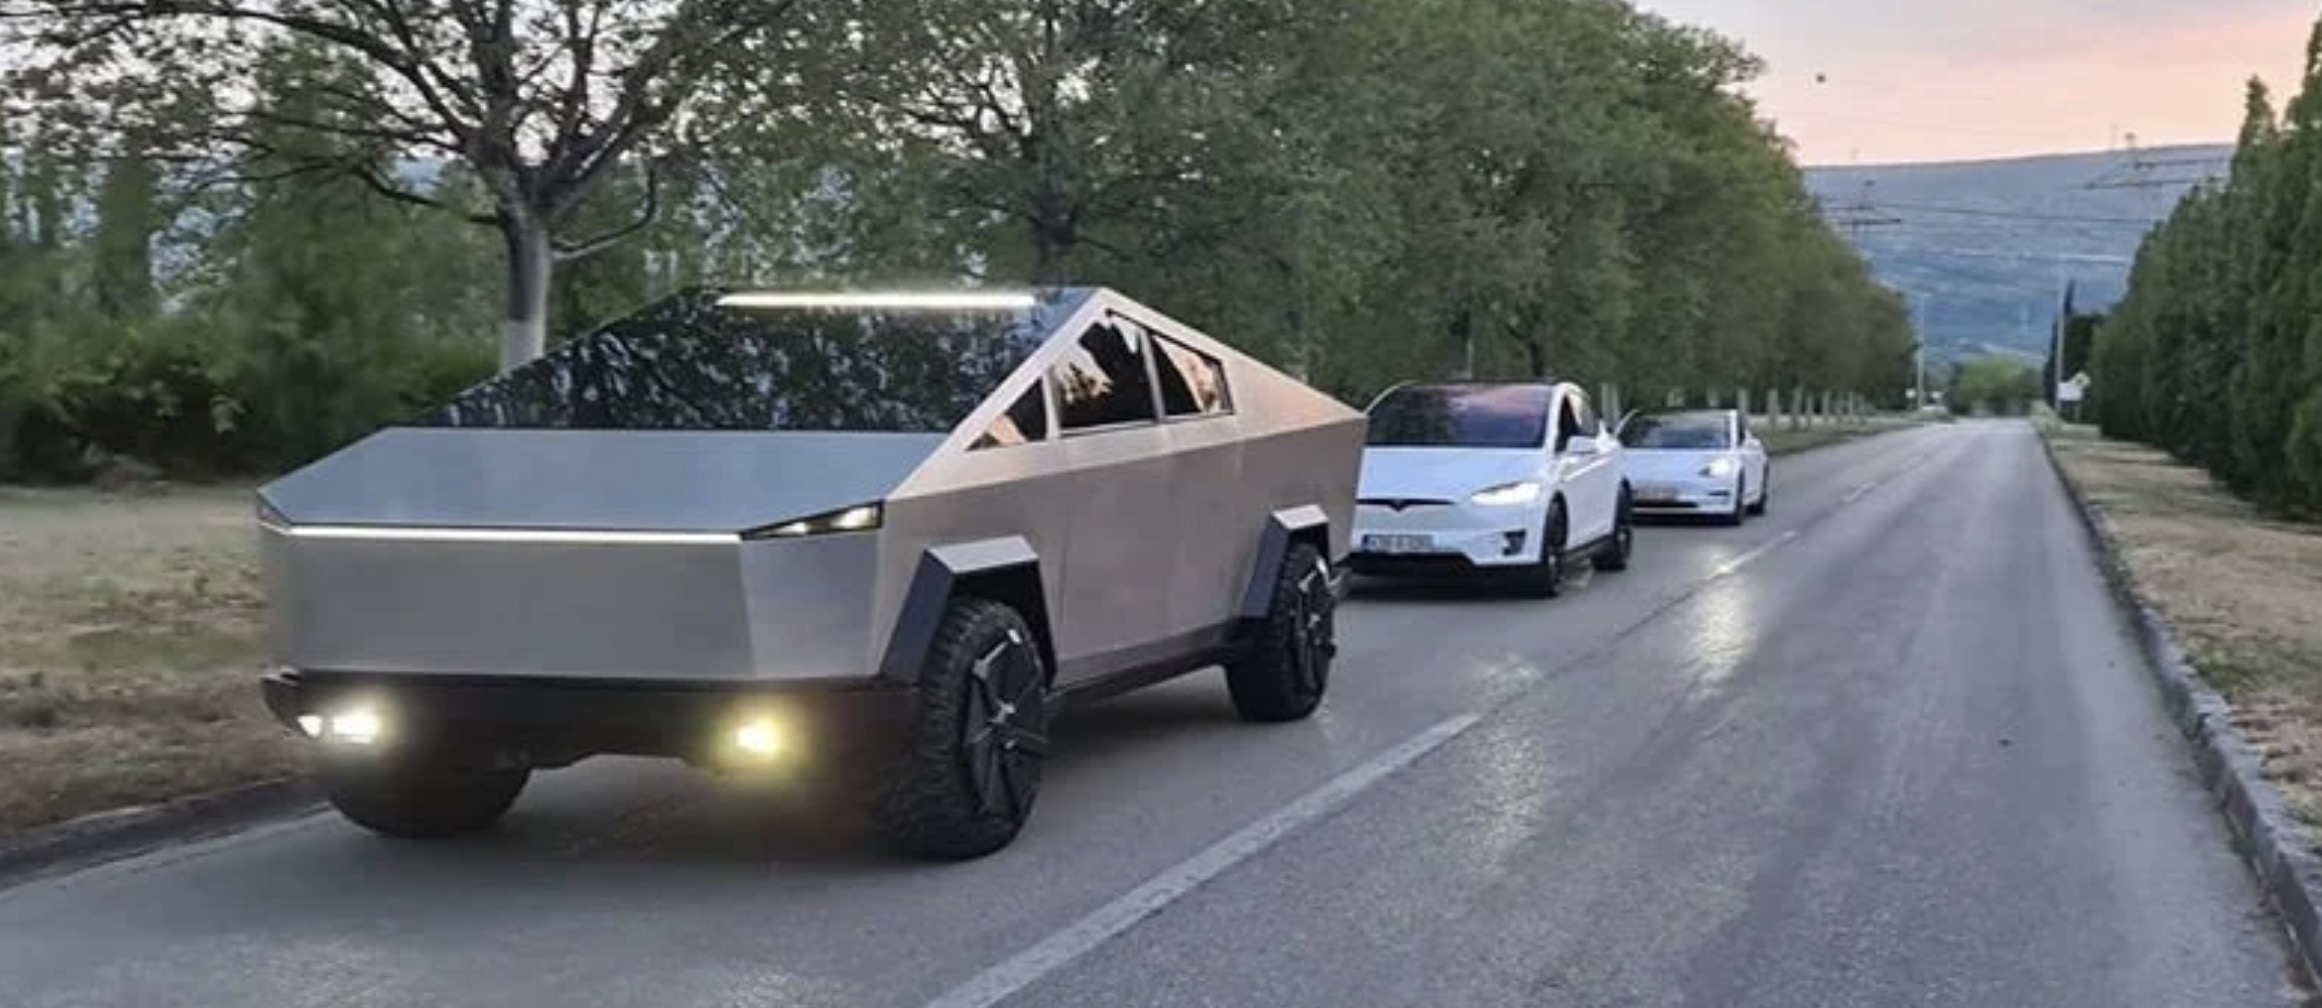 Tesla Cybertruck Electric Pickup Working Replica Looks Insanely Good Inside And Out Electrek